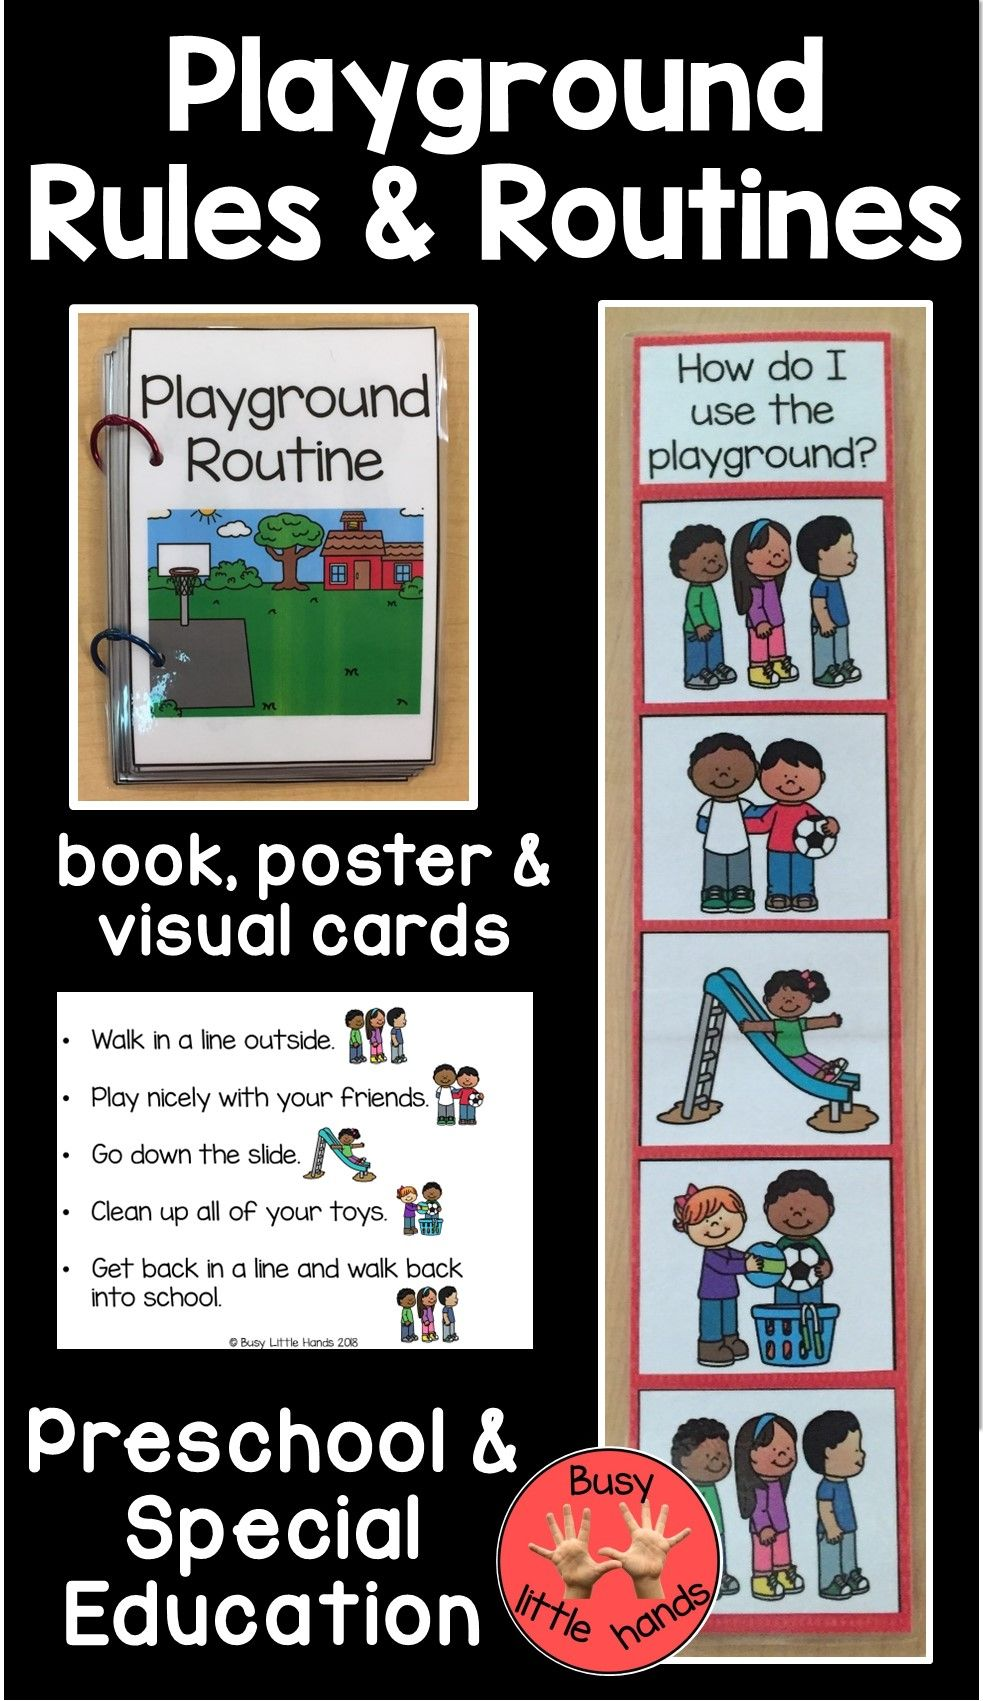 Playground Rules For Preschool Special Education Playground Rules Preschool Special Education Preschool Rules [ 1701 x 983 Pixel ]